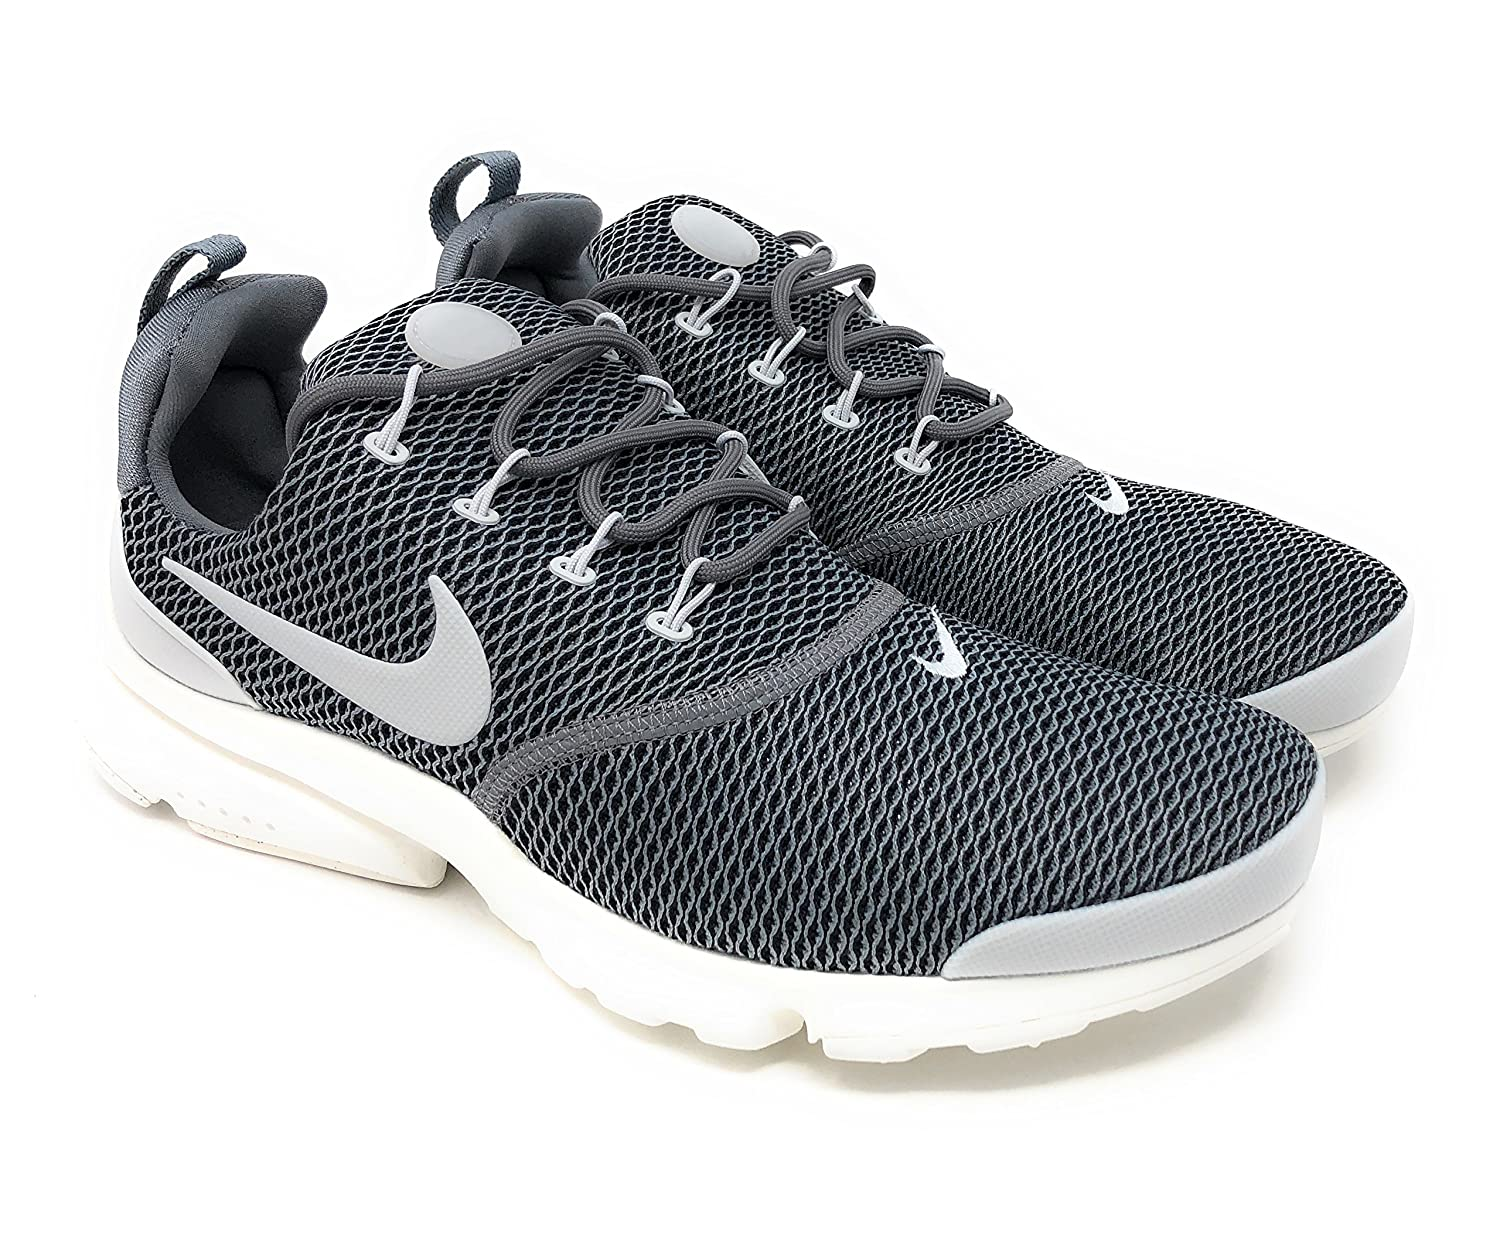 NIKE Presto Fly Womens Running Shoes B002UYNL0U 6 B(M) US|Cool Grey/Pure Platinum